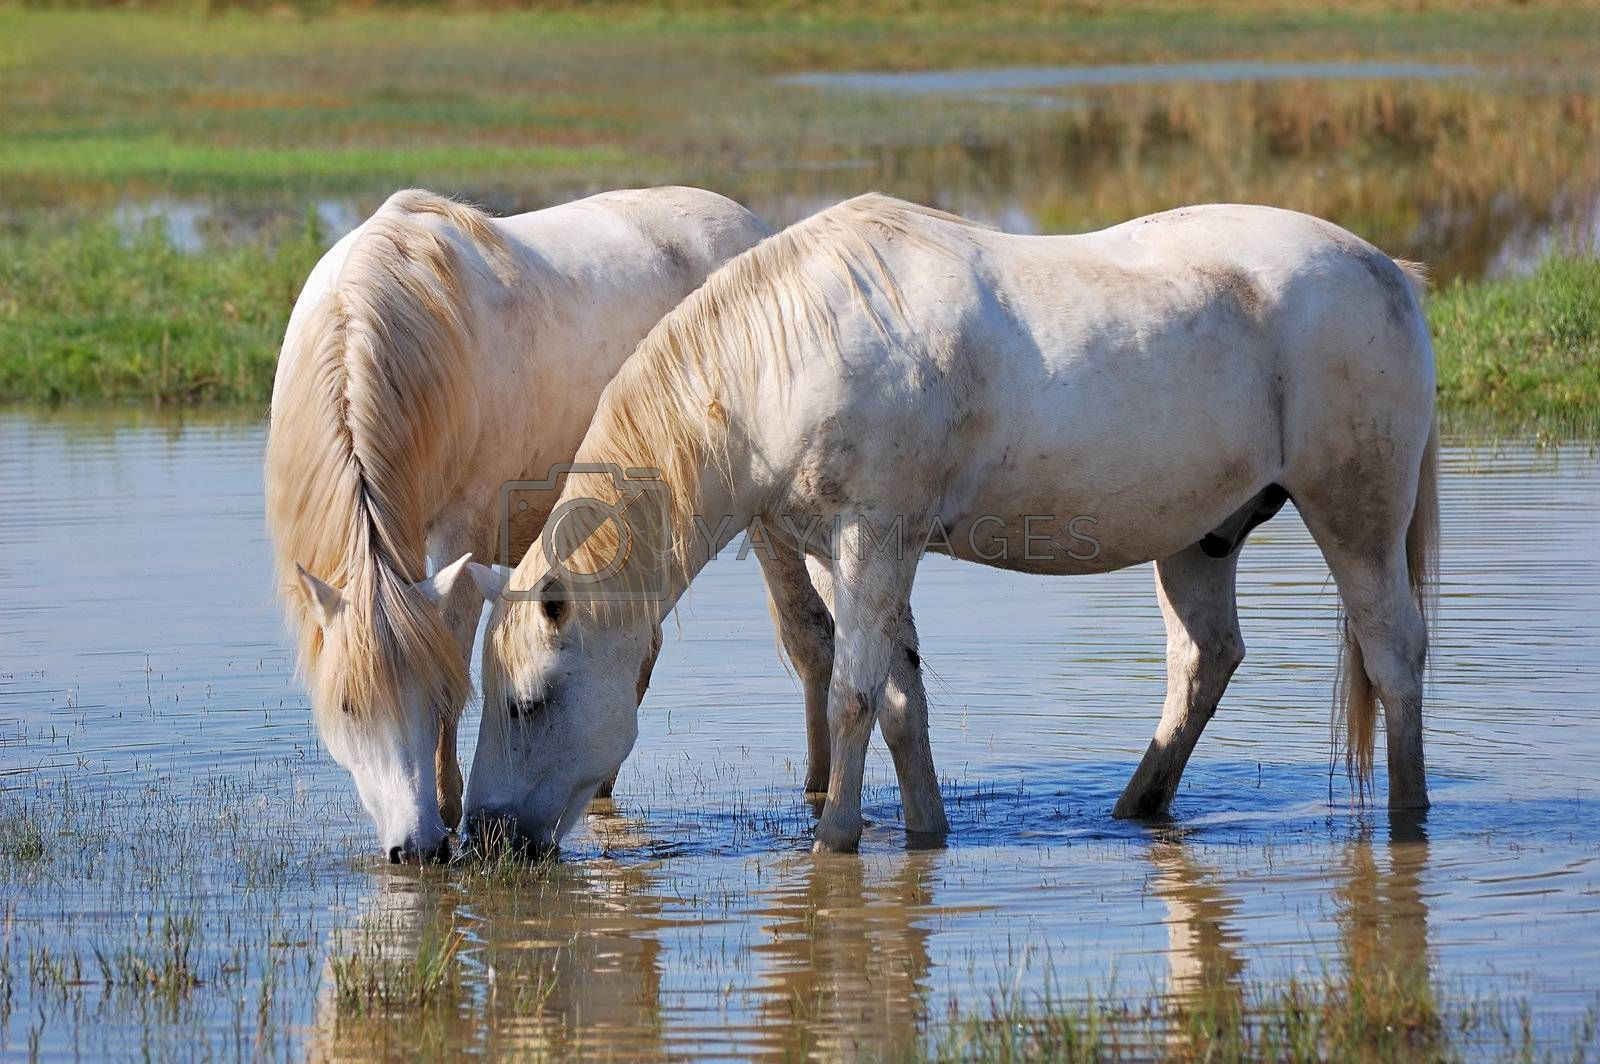 Couple of horses drinking water in a pond